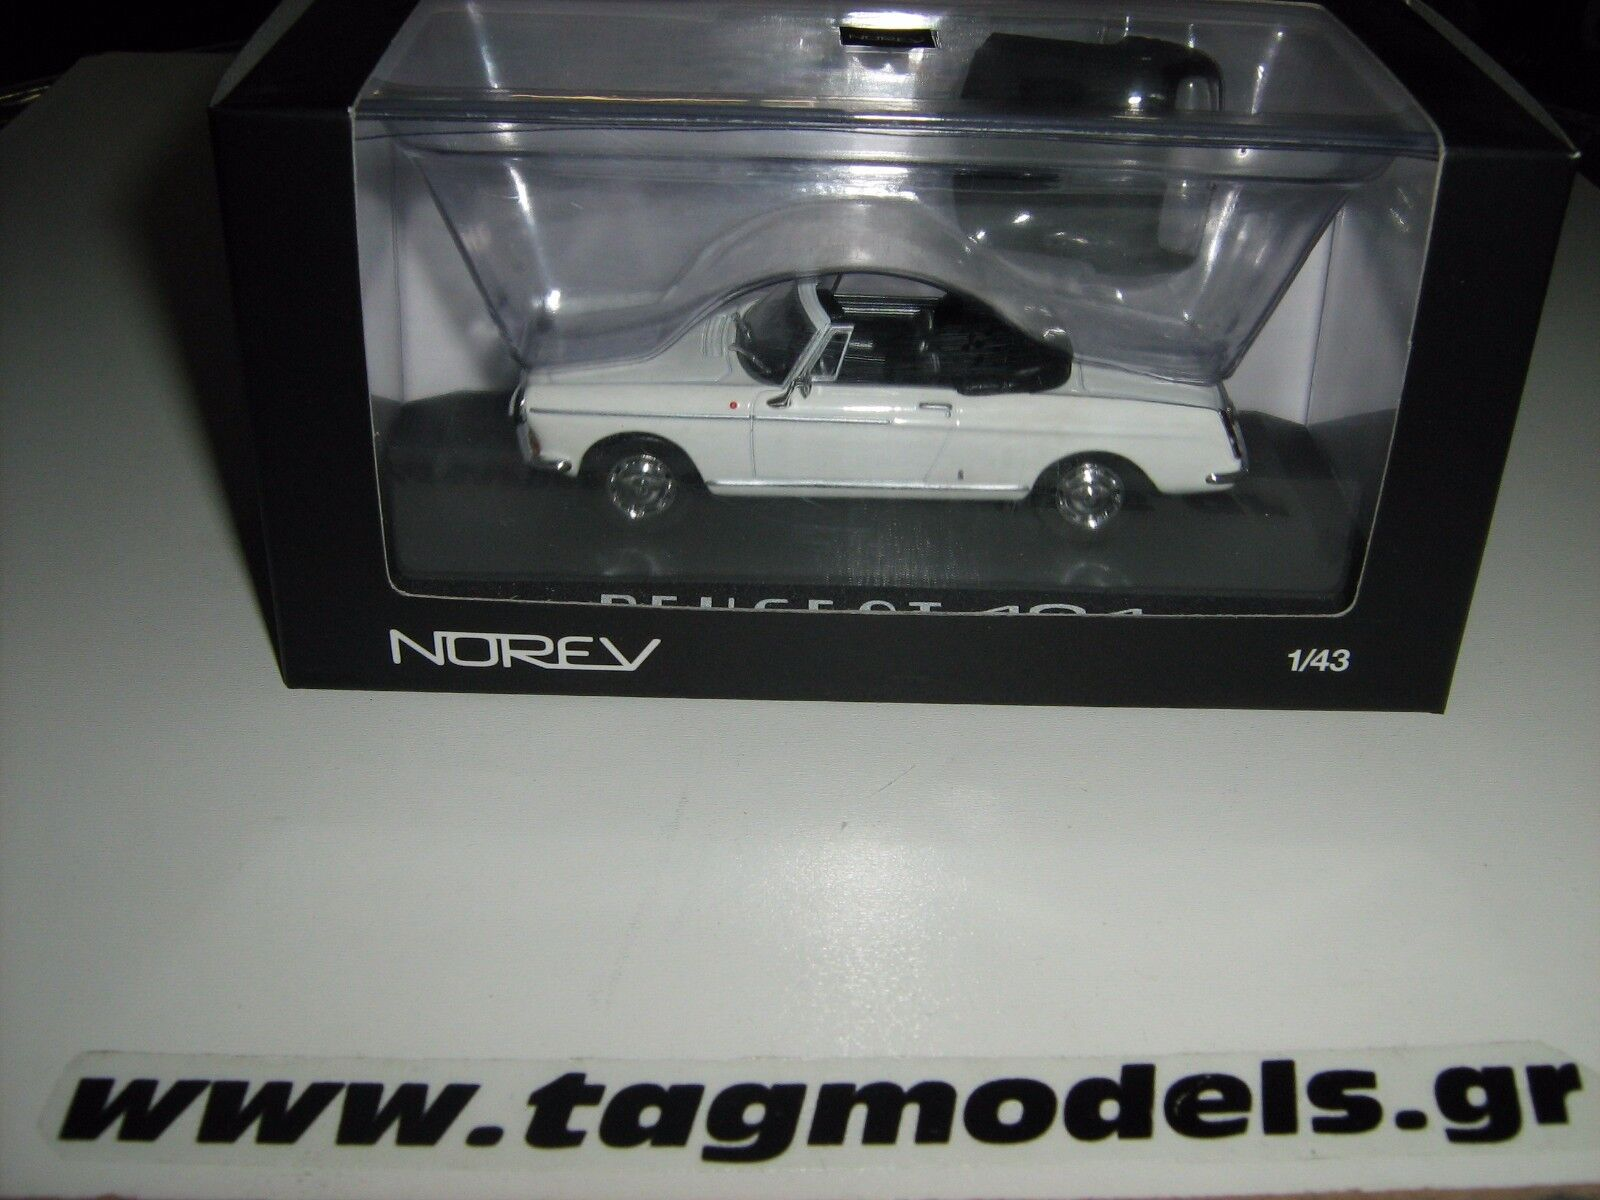 NOREV 474436 1 43 PEUGEOT 404 CABRIOLET CABRIOLET CABRIOLET BRAND NEW IN A BOX 90c4a5